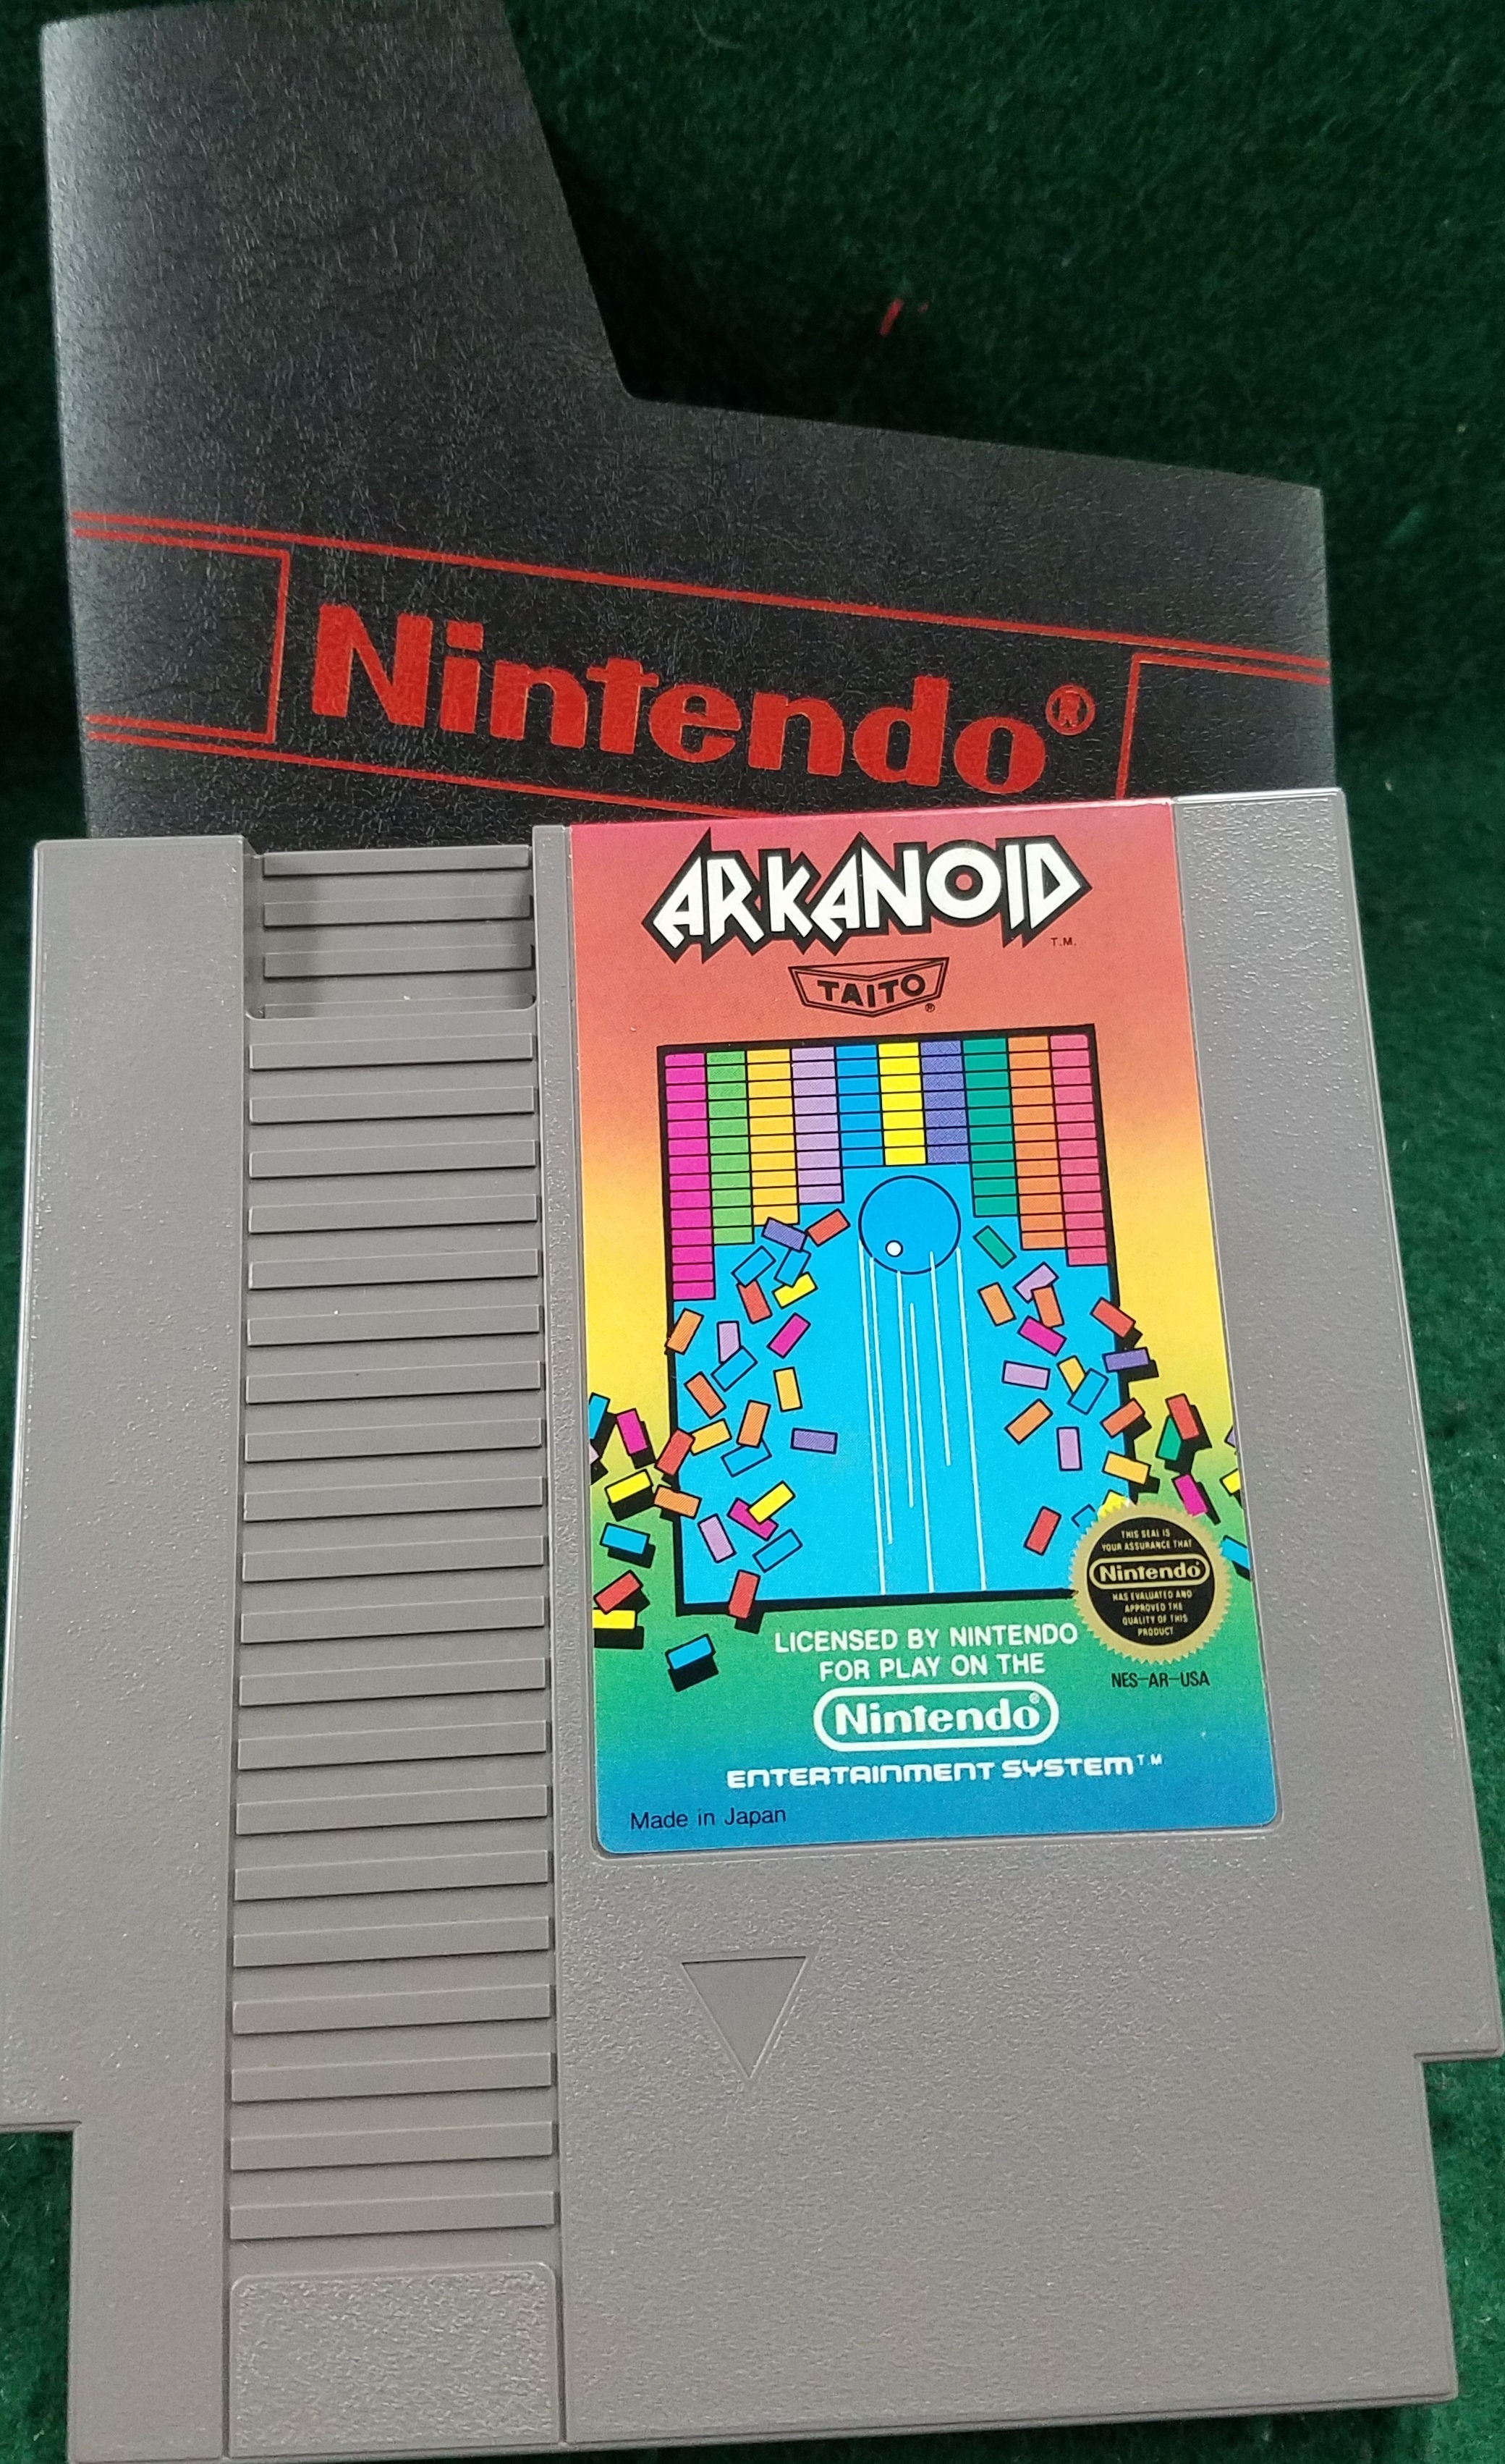 ORIGINAL NINTENDO ARKANOID GAME